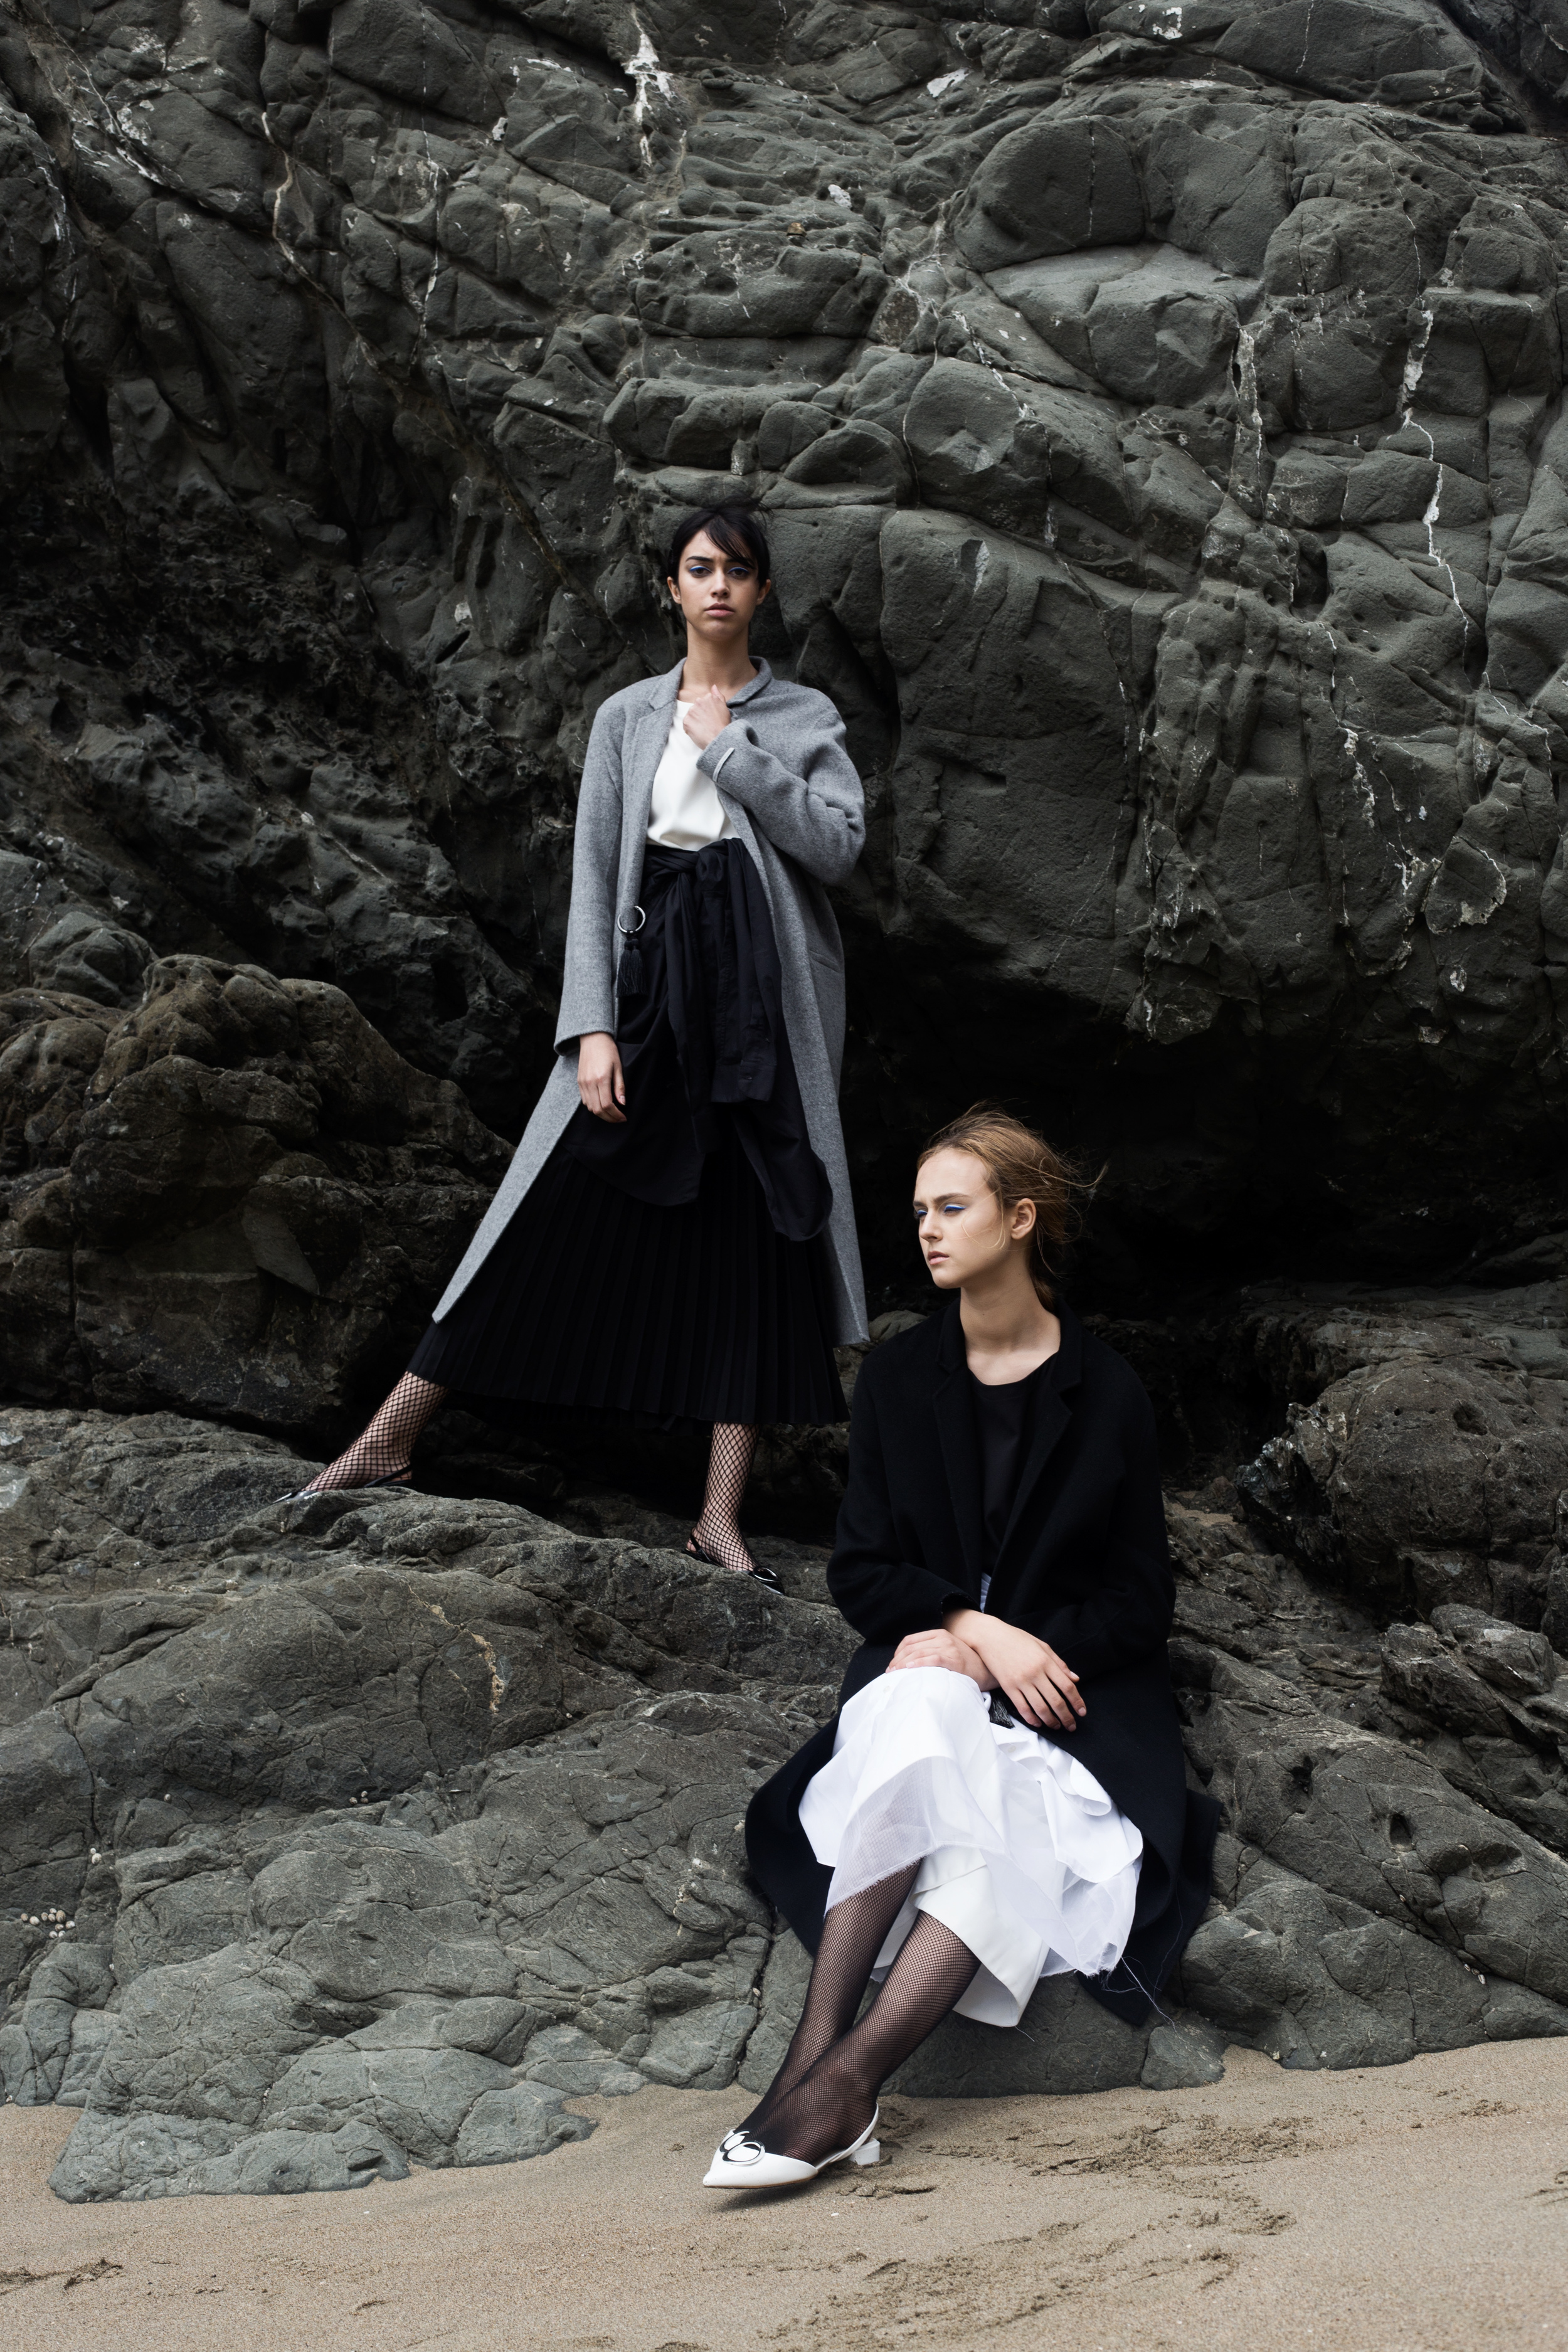 LEFT LOOK: White top: Mute by JL | Grey coat: Mute by JL | Black skirt: Mute by JL | RIGHT LOOK: Black top: Mute by JL | Black coat: Mute by JL | White skirt: Zara